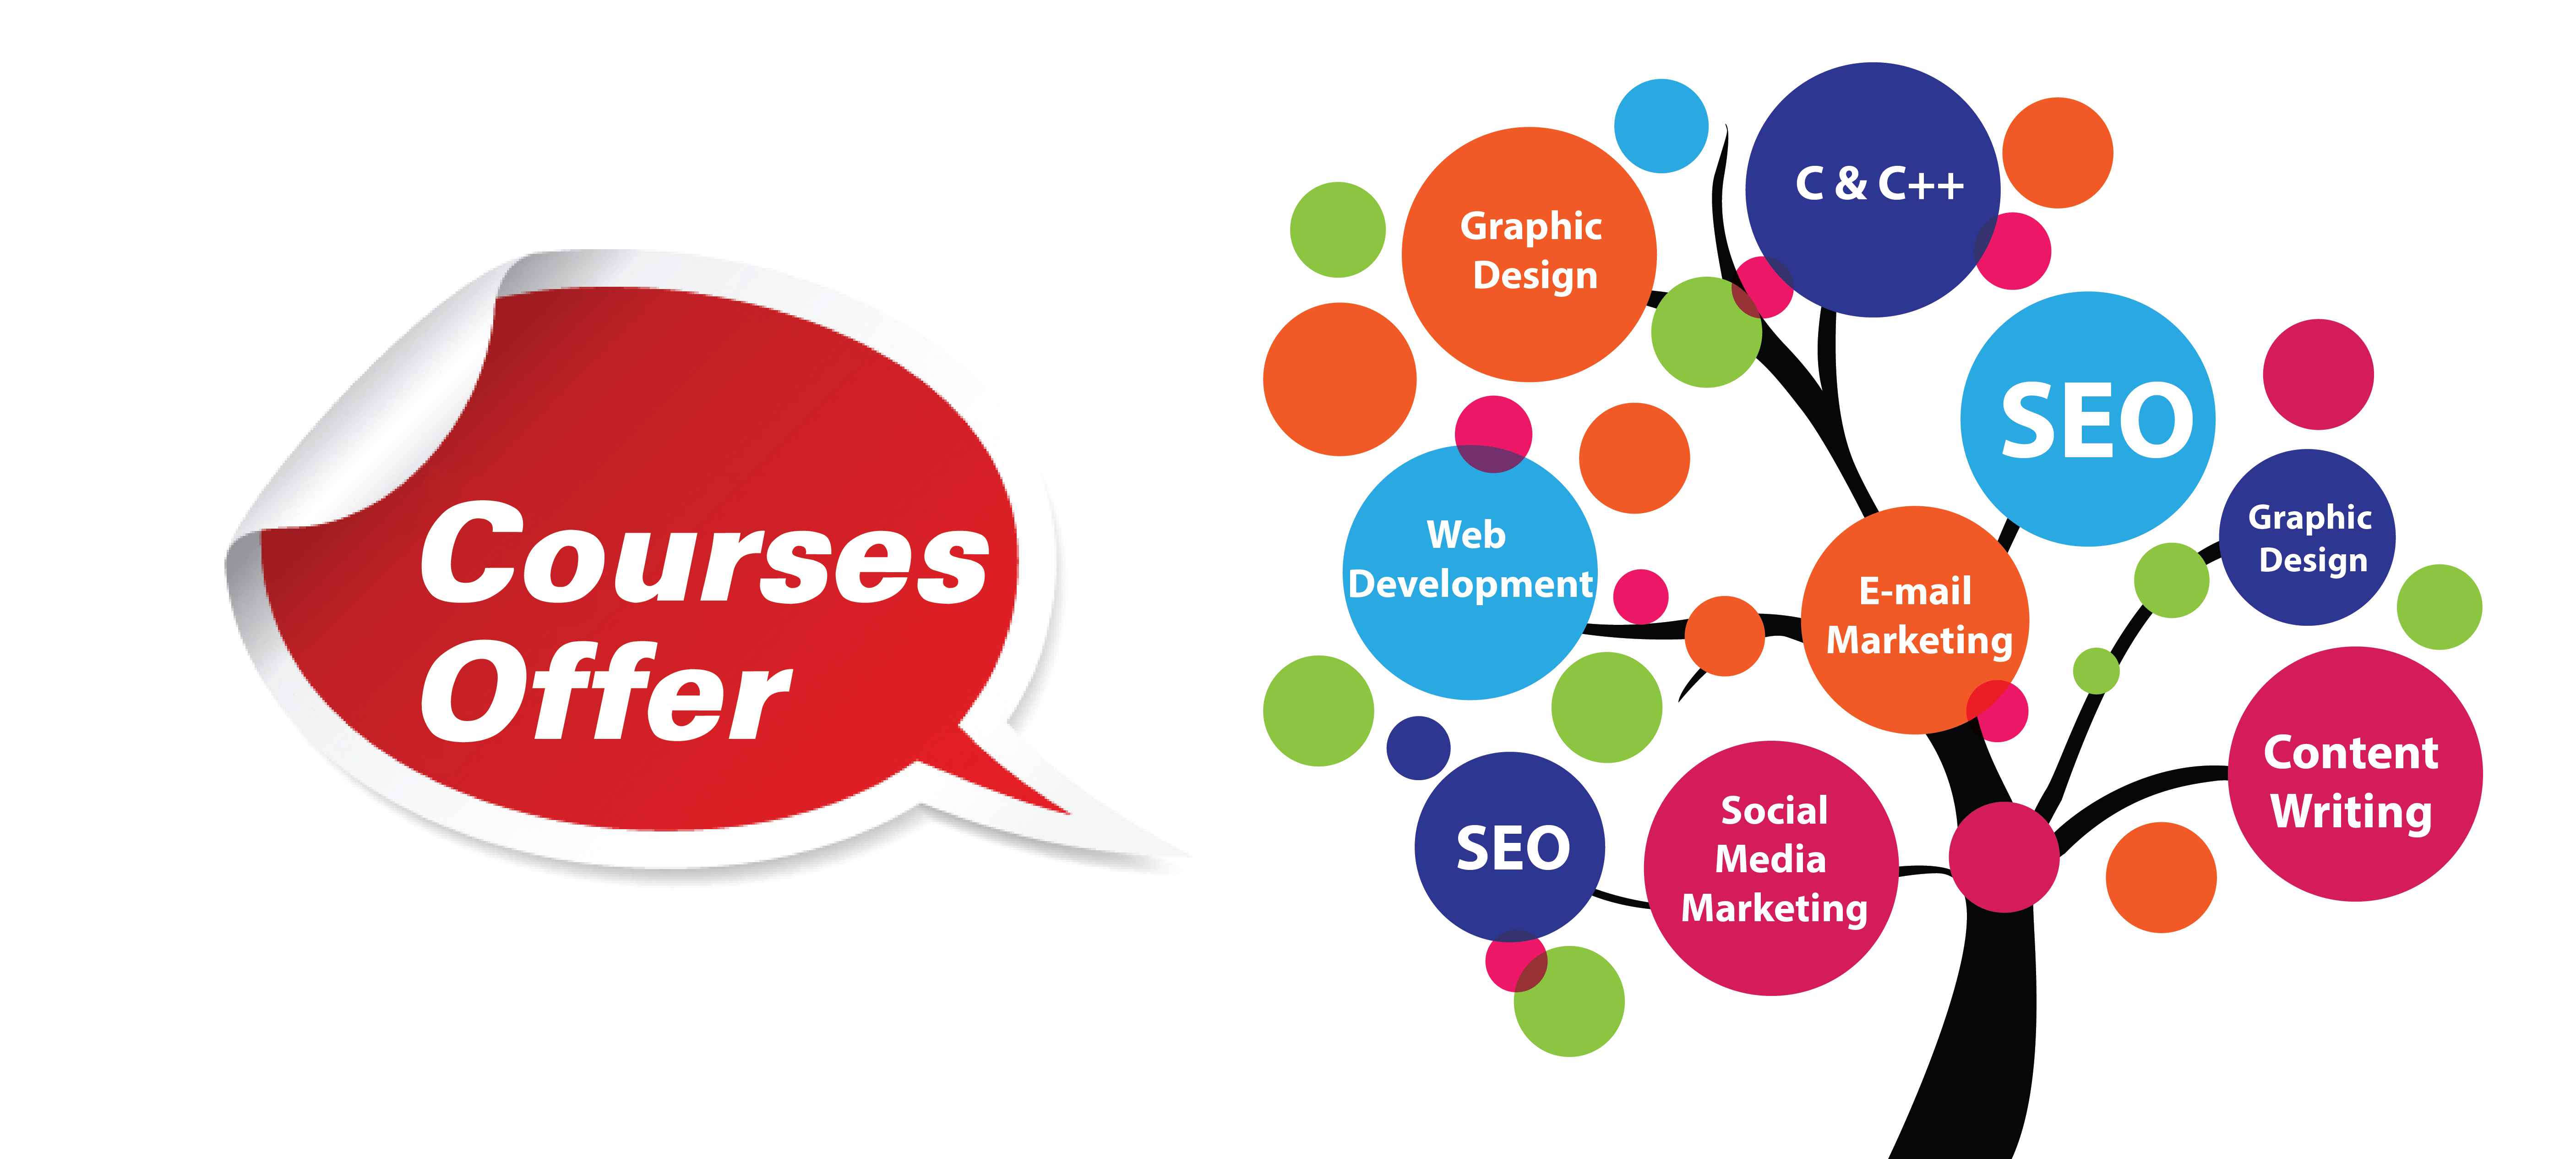 Professional IT Courses of ByteCode